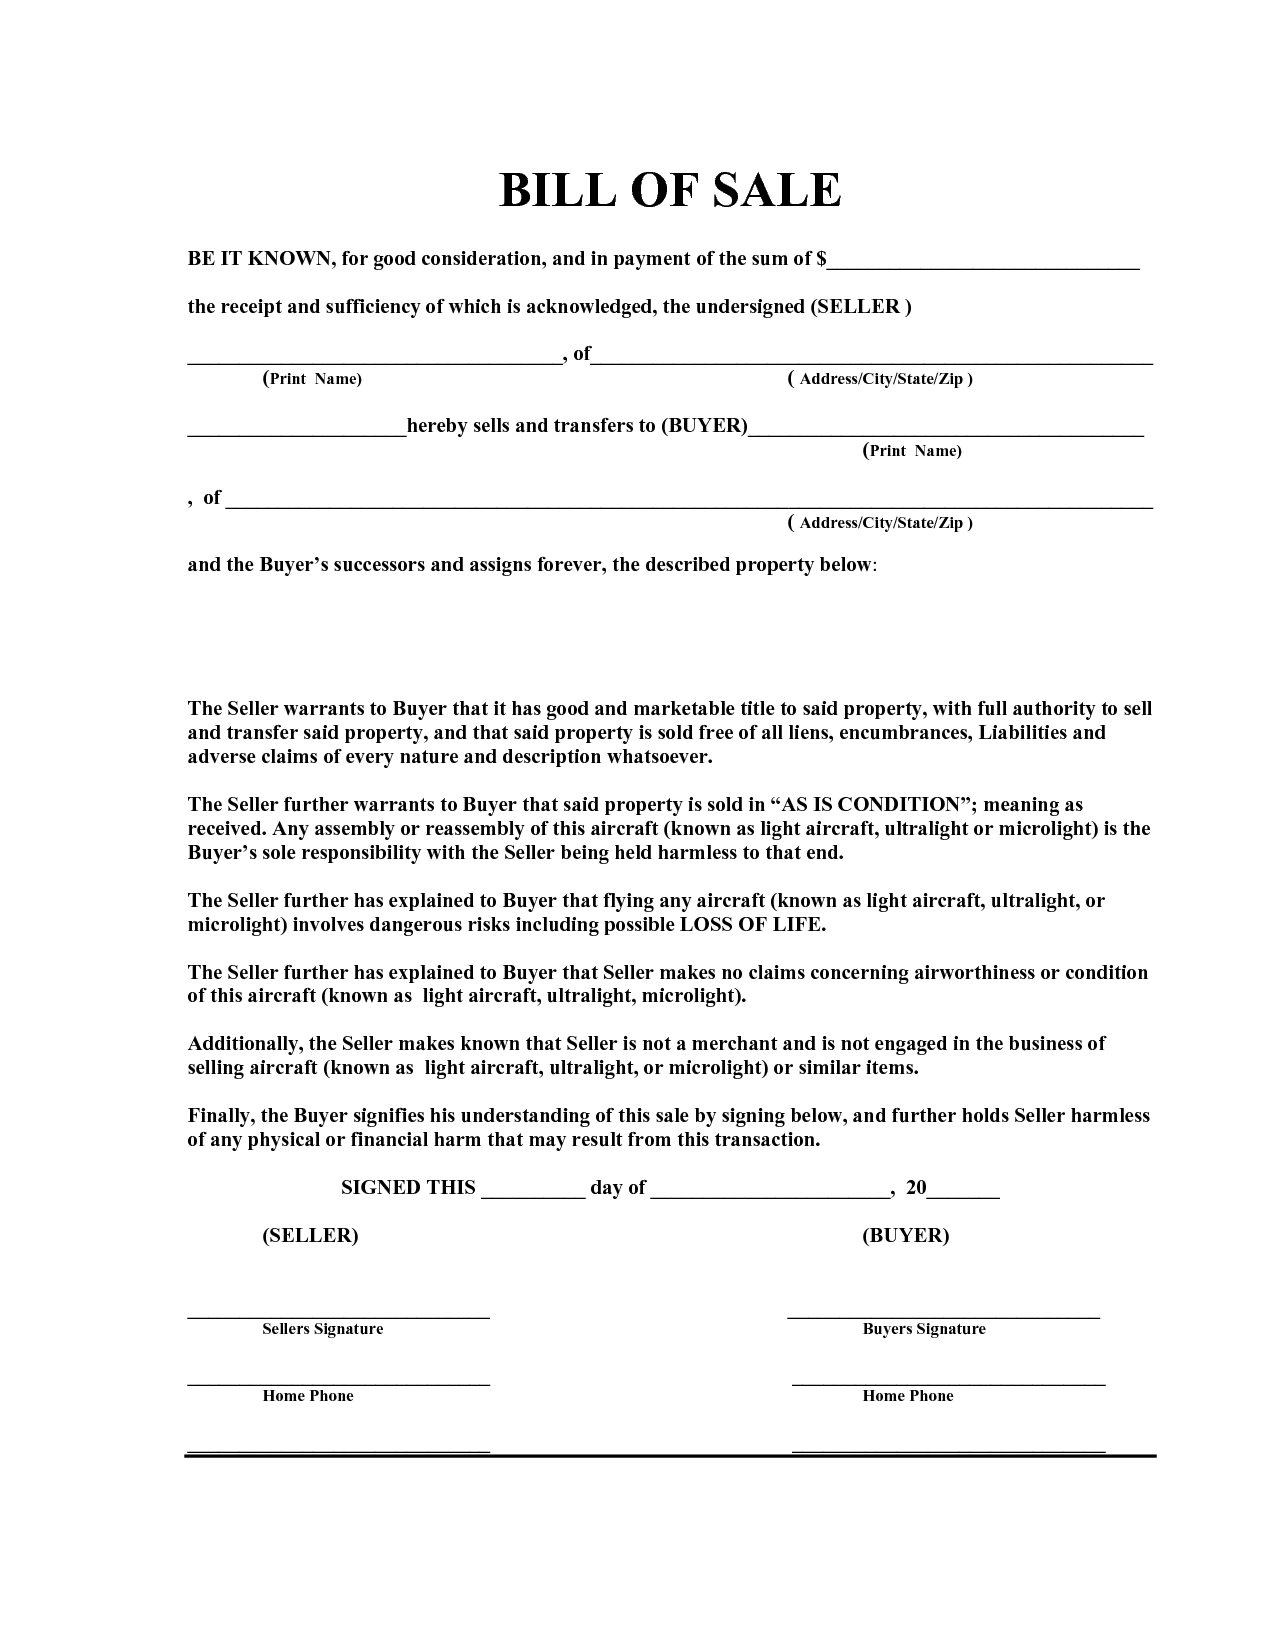 Free Bill of Sale Template PDF by Marymenti asis bill of sale – Template for a Bill of Sale